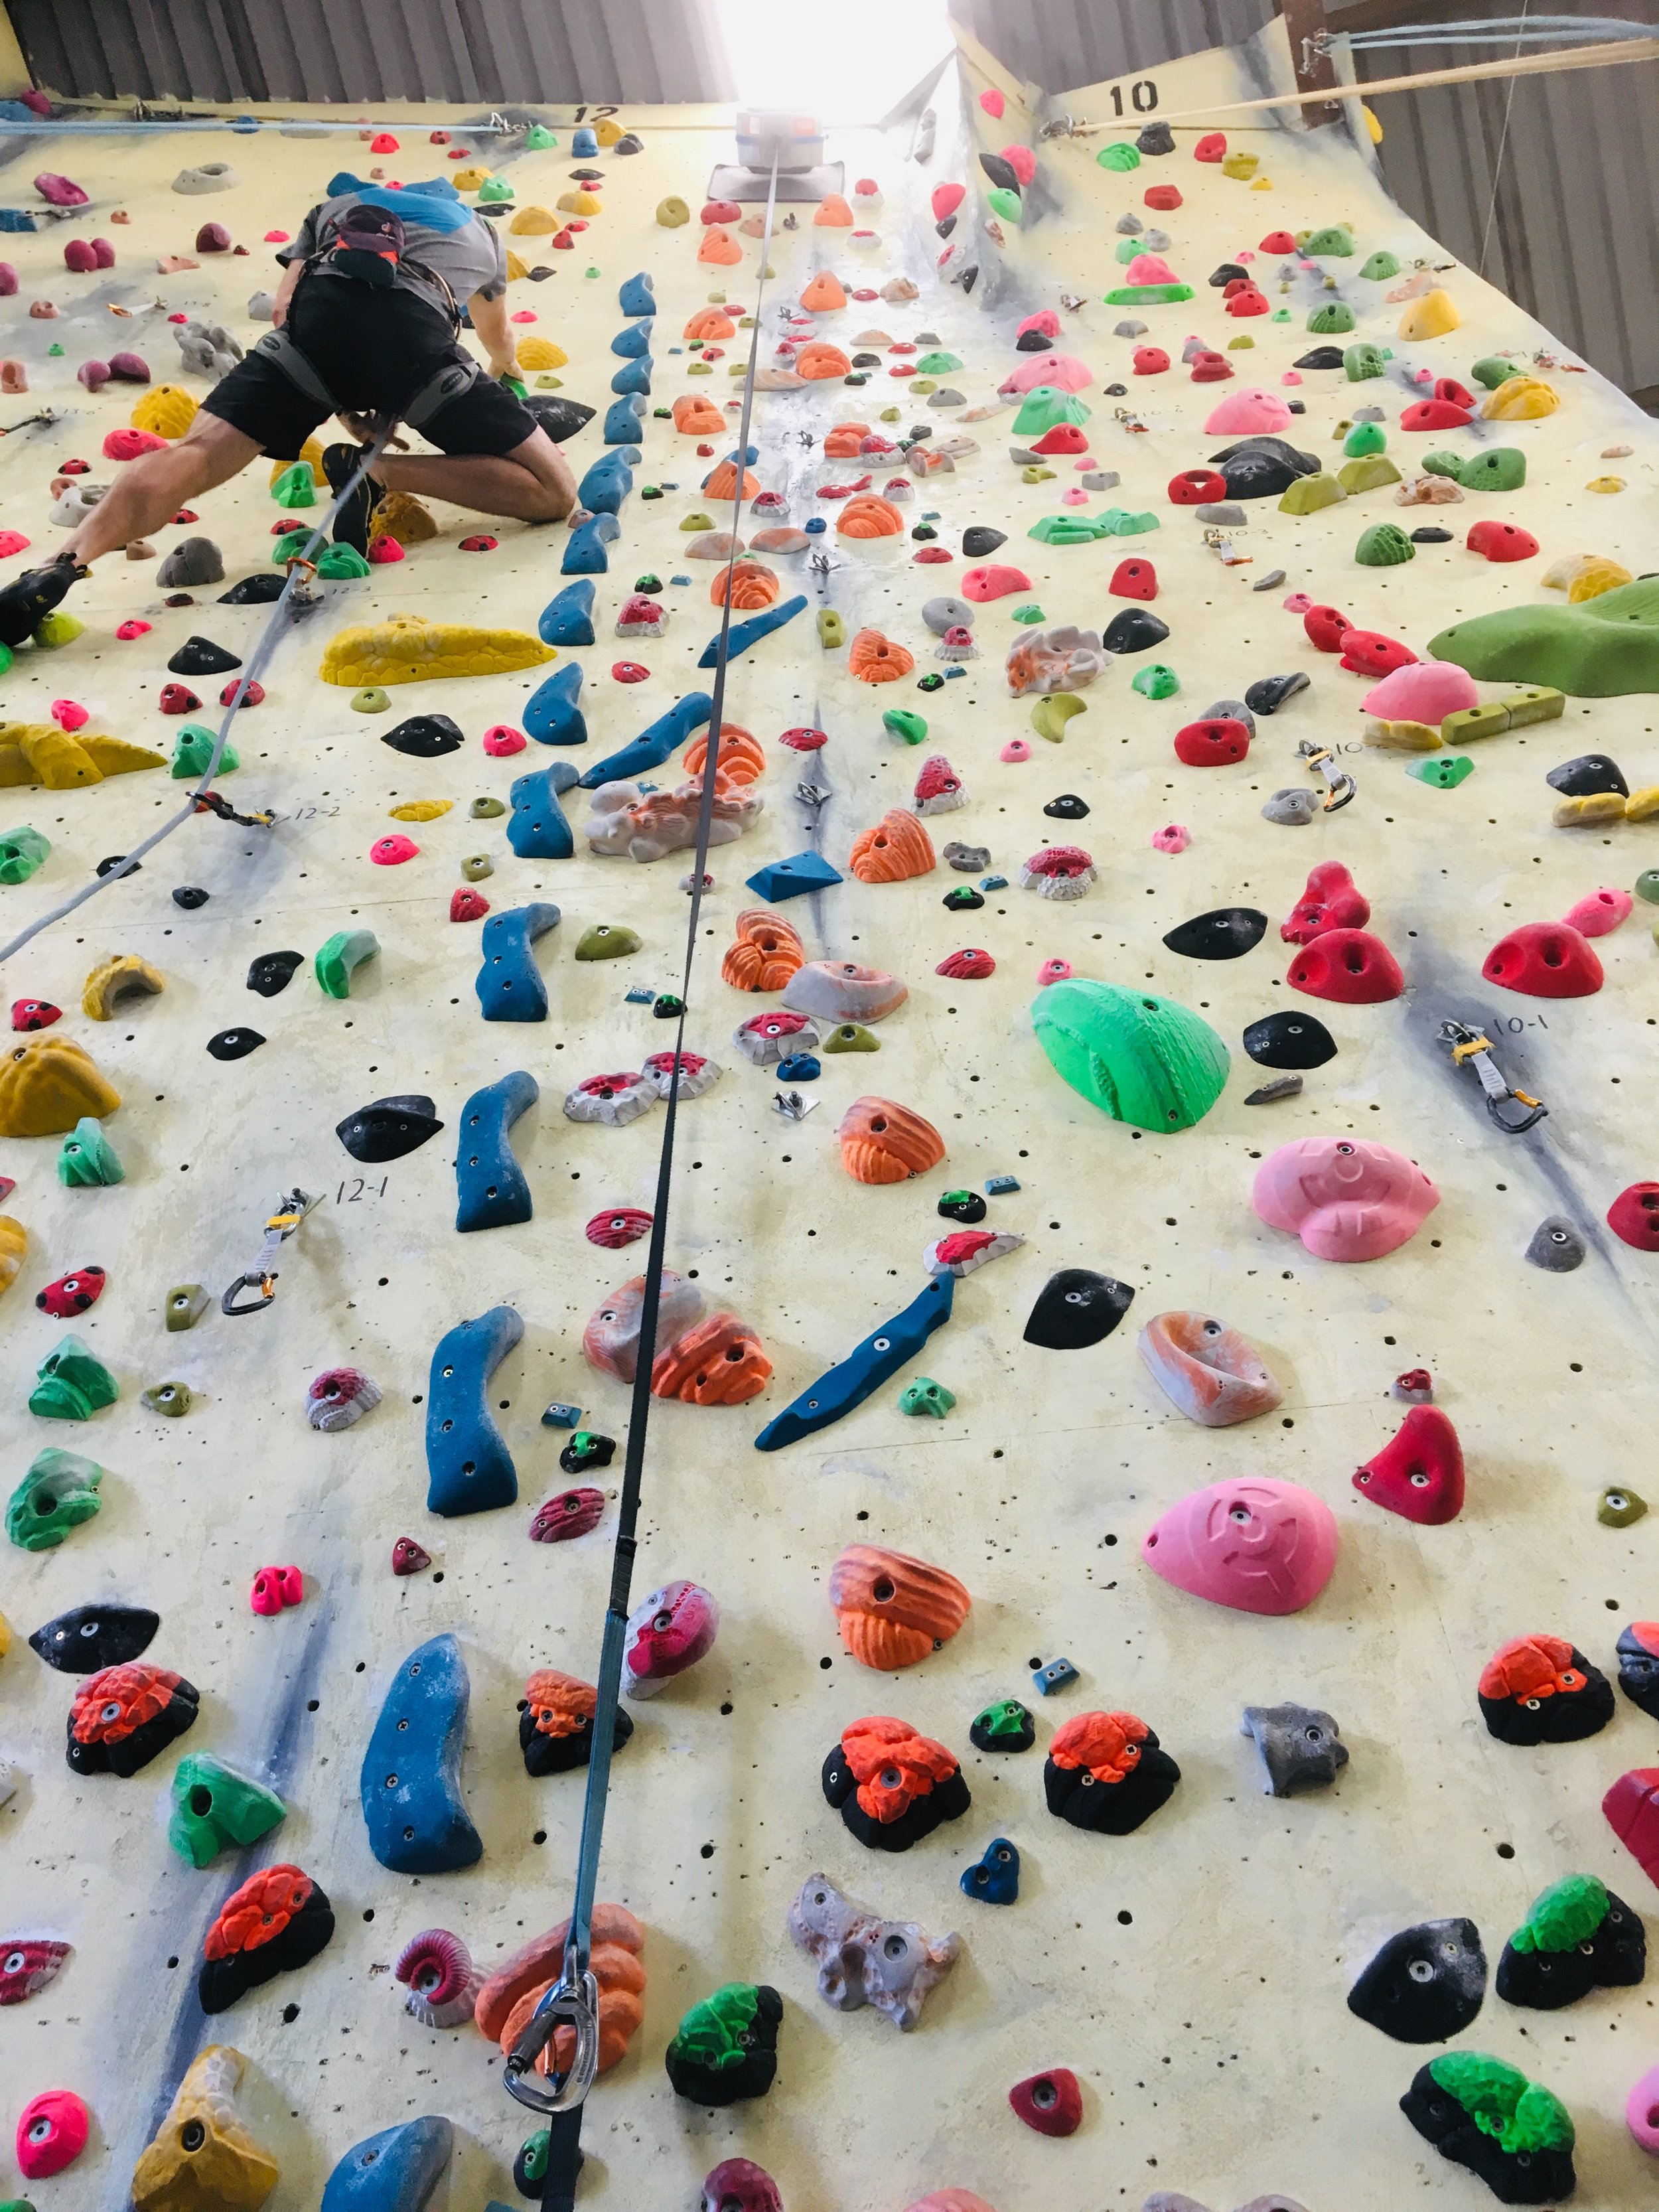 Hanger 11 (Auto Belay) - No New Routes (May 20th)